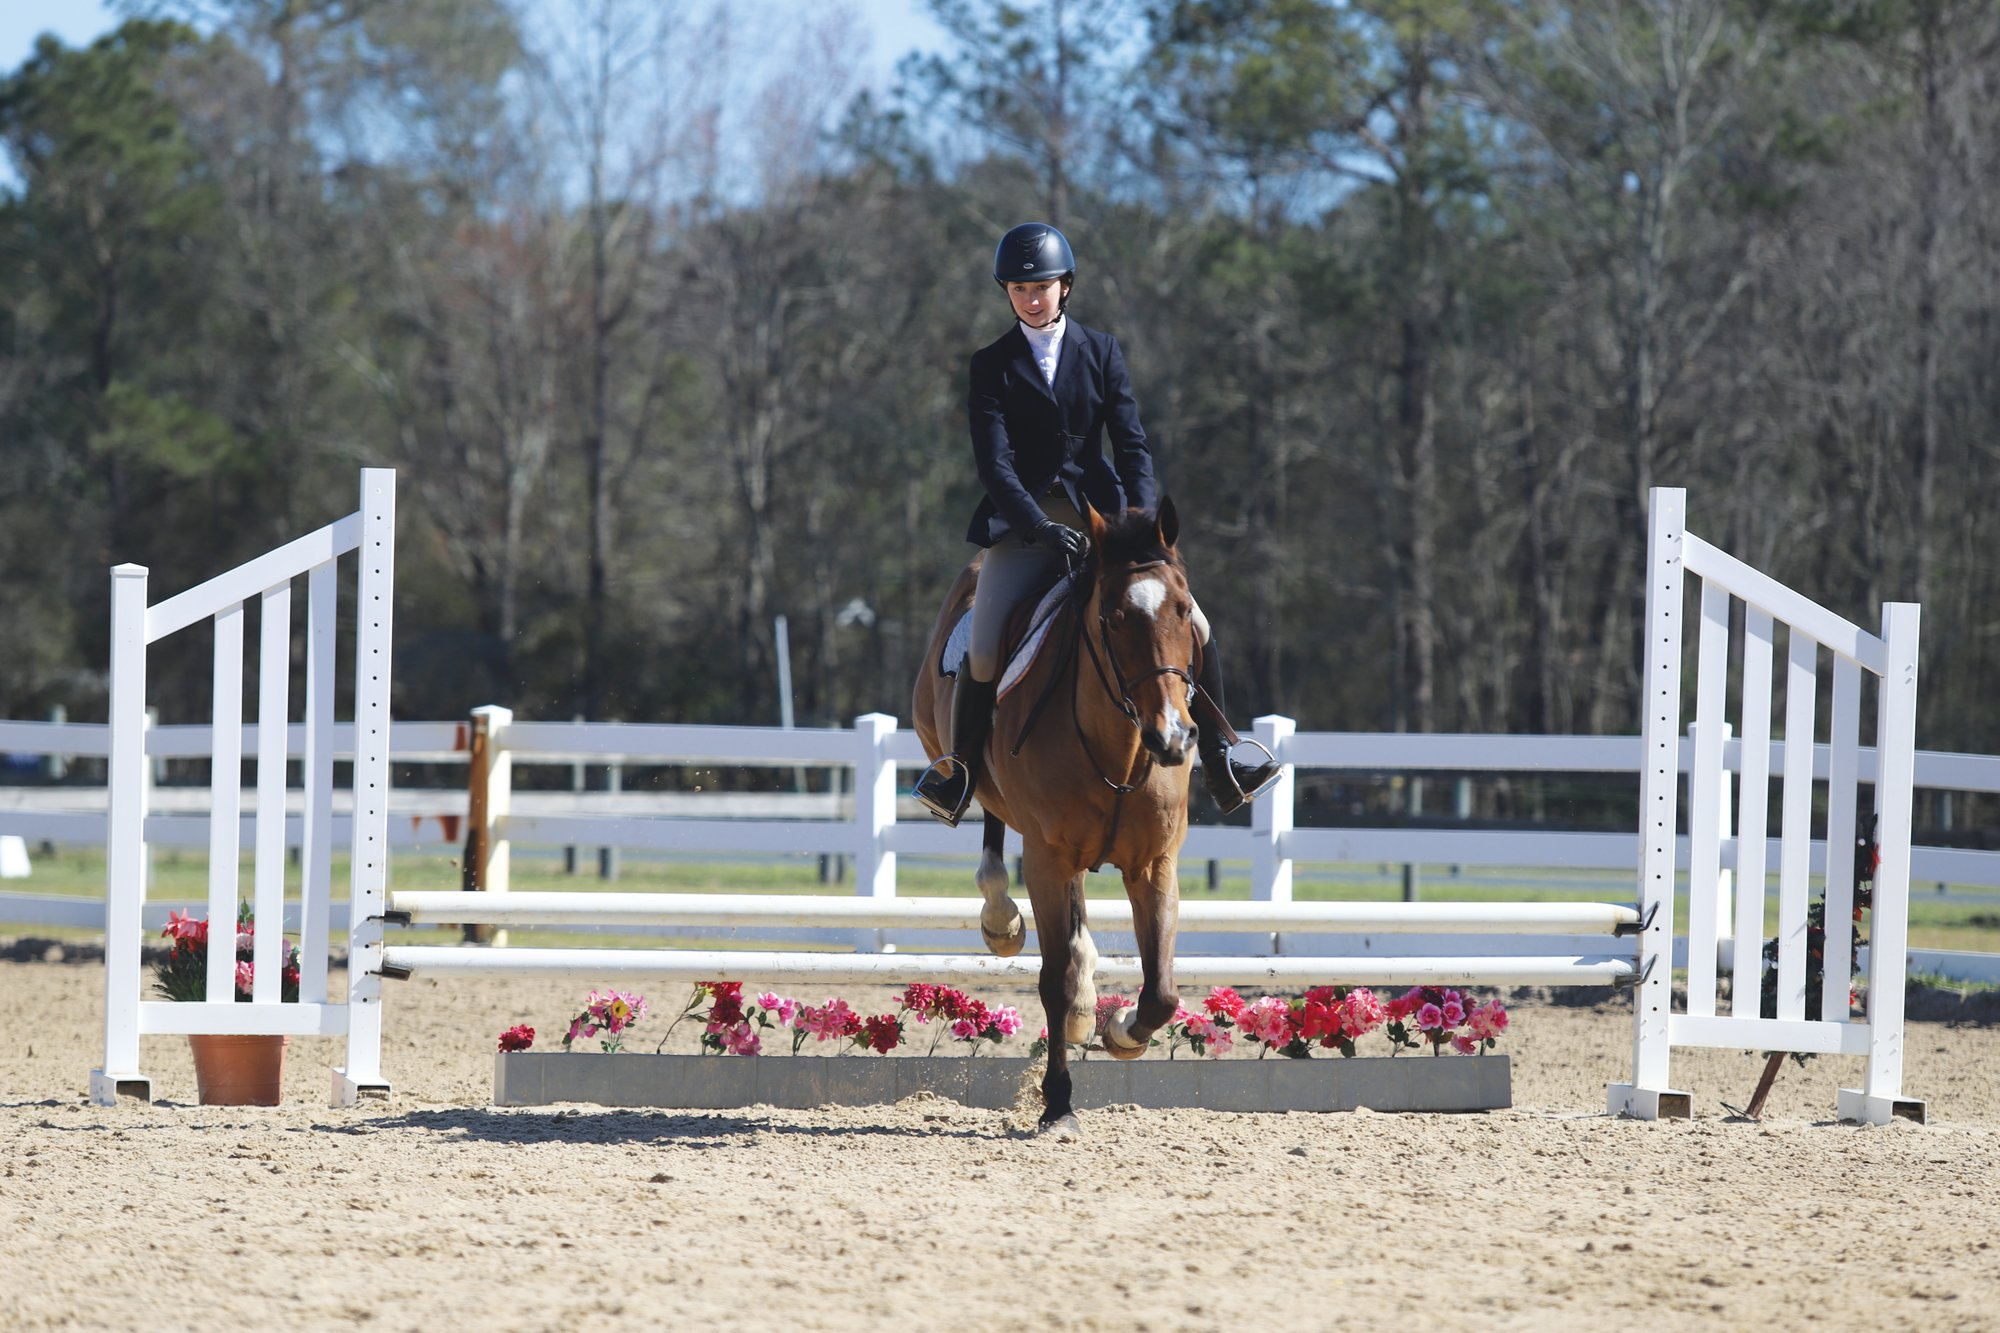 Wilson Hall's Kaitlyn Smith competes in the SCISA Hunt Seat Equestrian Winter Regular Season Qualifying Competition on Saturday in Timmonsville. Smith took home a pair of first-place finishes on the day.